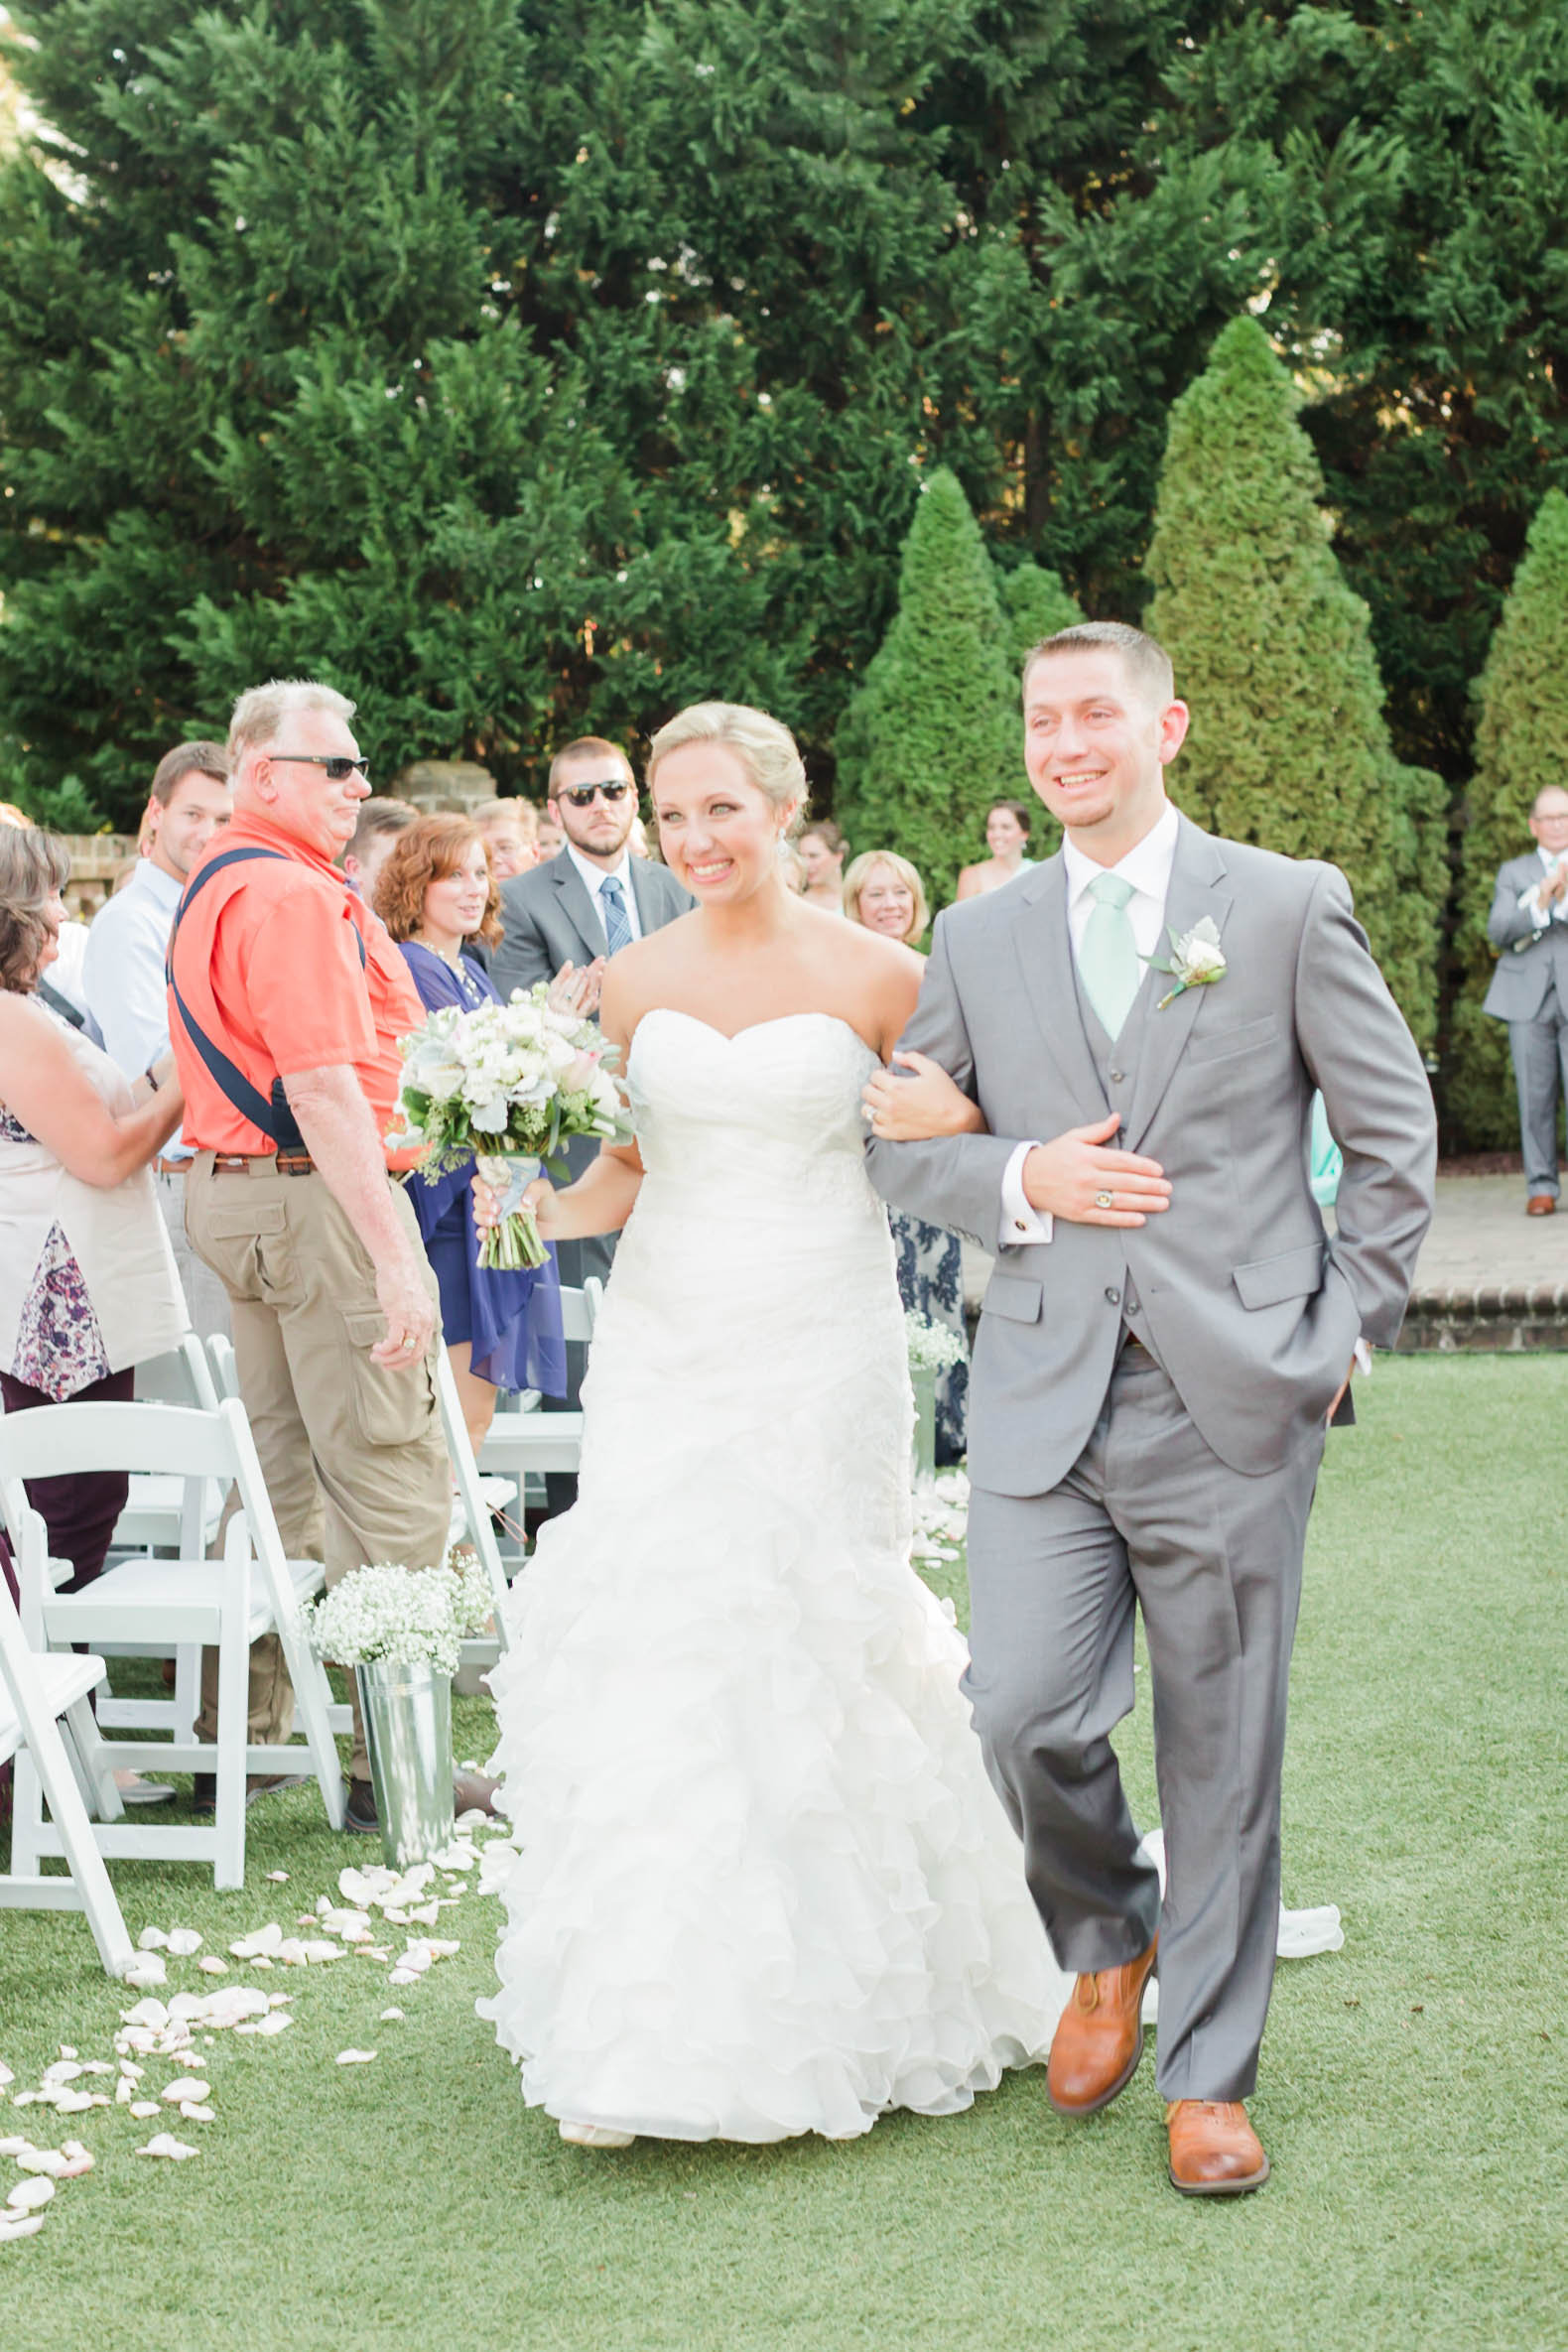 View More: http://amyallenphotography.pass.us/colleen-and-tyler-wedding